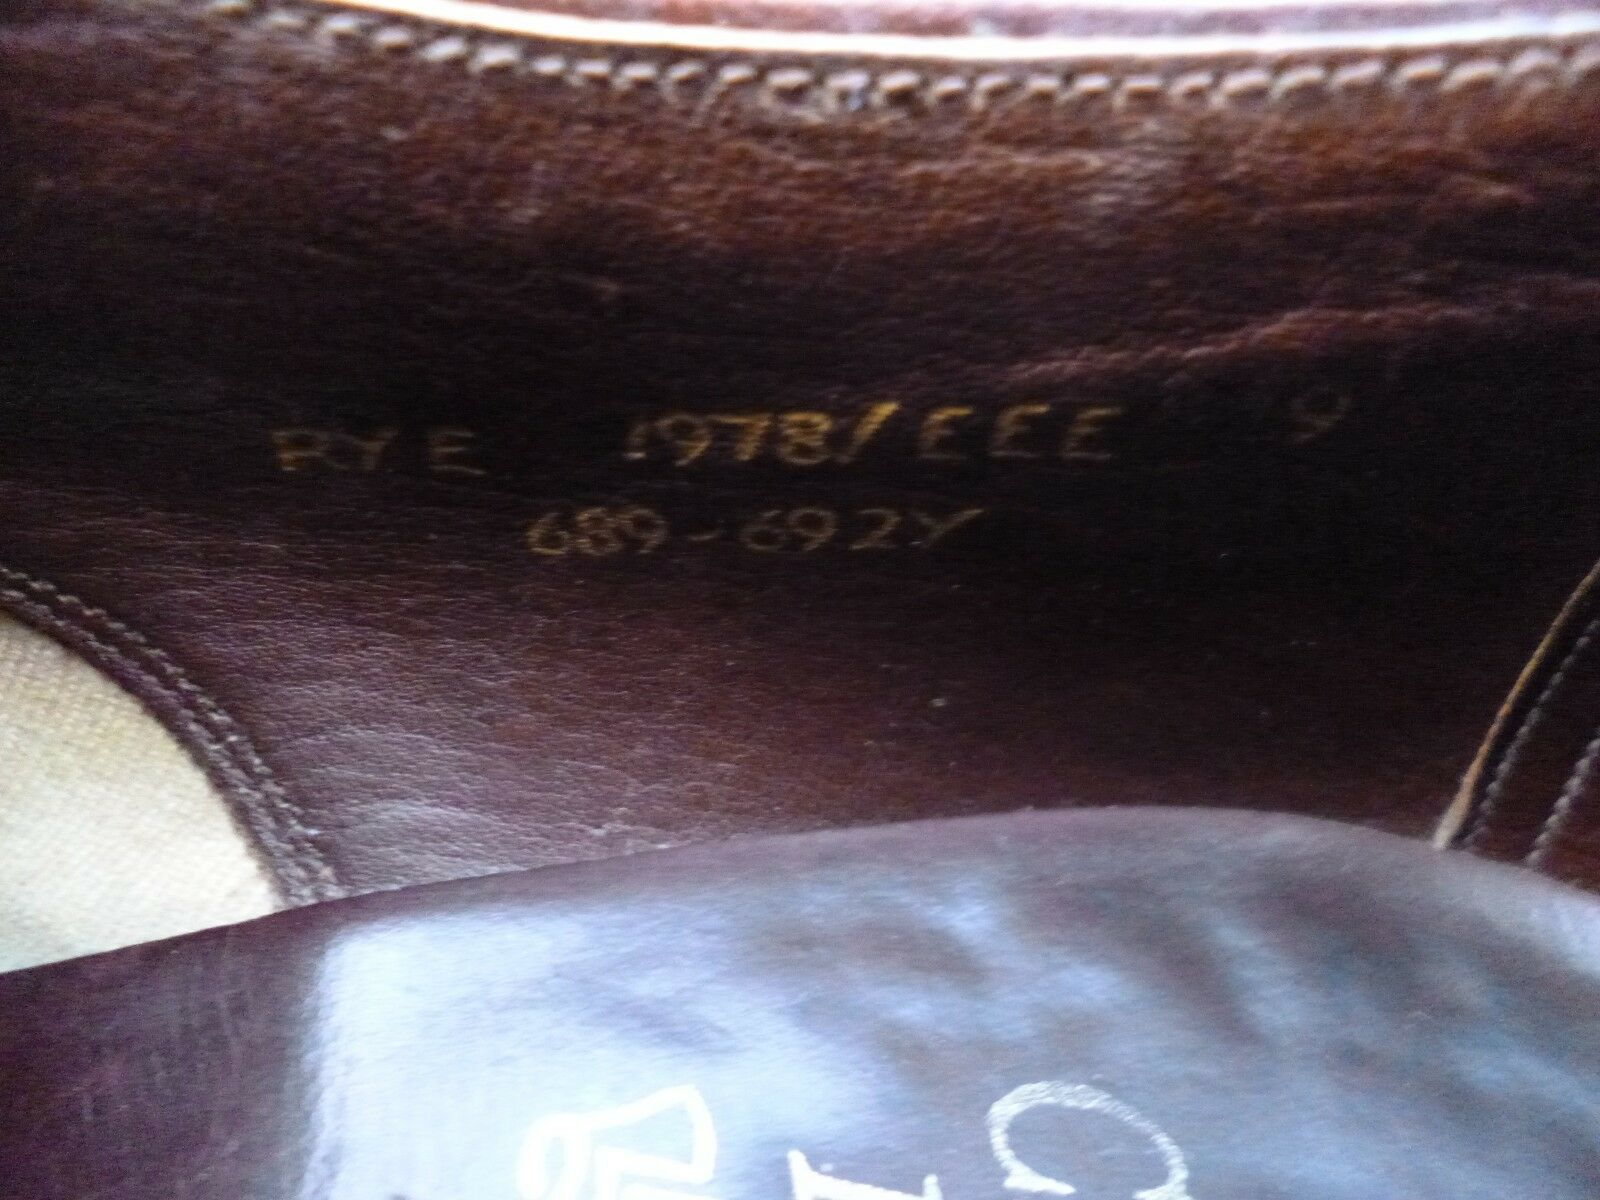 CHEANEY / CHURCH VINTAGE DERBY – BROWN 9 / TAN - UK 9 BROWN – RYE – EXCELLENT CONDITION 1e0022